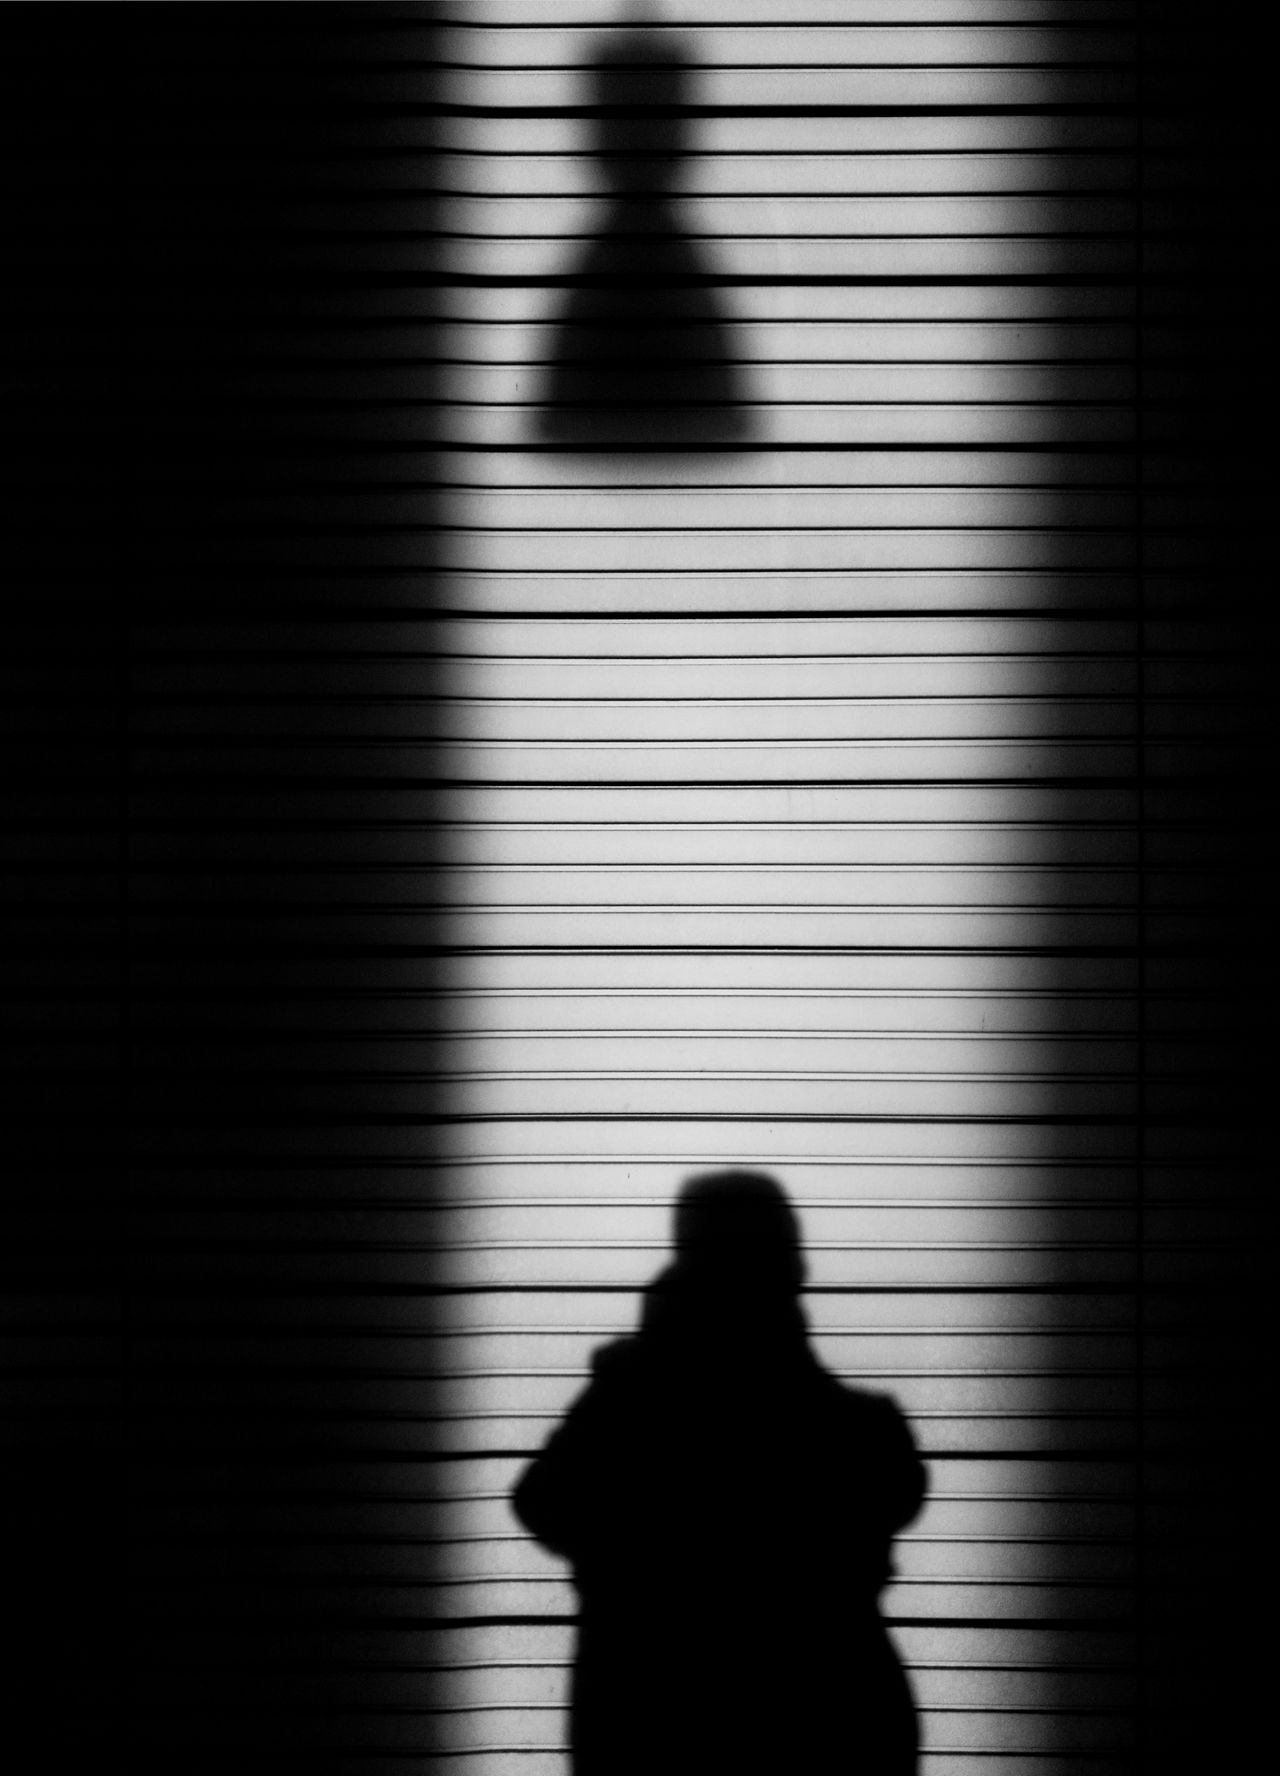 Shadowselfie Black & White Black And White Black And White Photography Blackandwhite Photography Cityexplorer Dark HuaweiP9 Huaweiphotography Light And Shadow Minimalism Minimalist Minimalistic Minimalobsession Monochrome One Person Outdoors Schwarz & Weiß Schwarzweiß Selfie Shadow Shadow And Light Shadowplay Silhouette